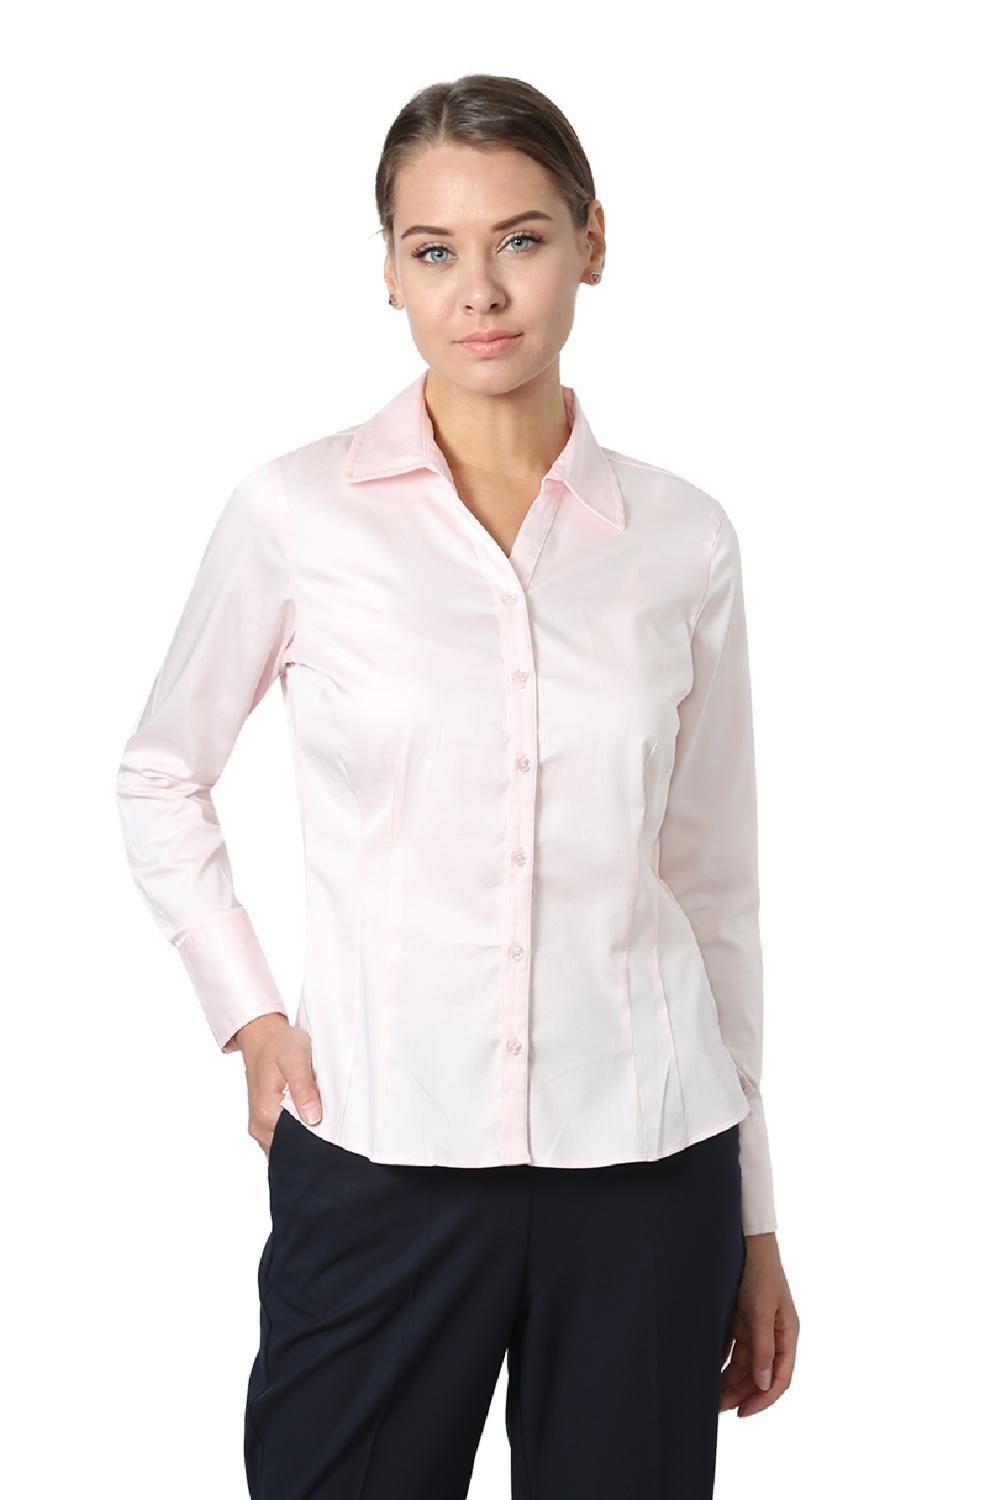 959a75d1ece6c Solly Shirts & Blouses, Allen Solly Pink Shirt for Women at Allensolly.com